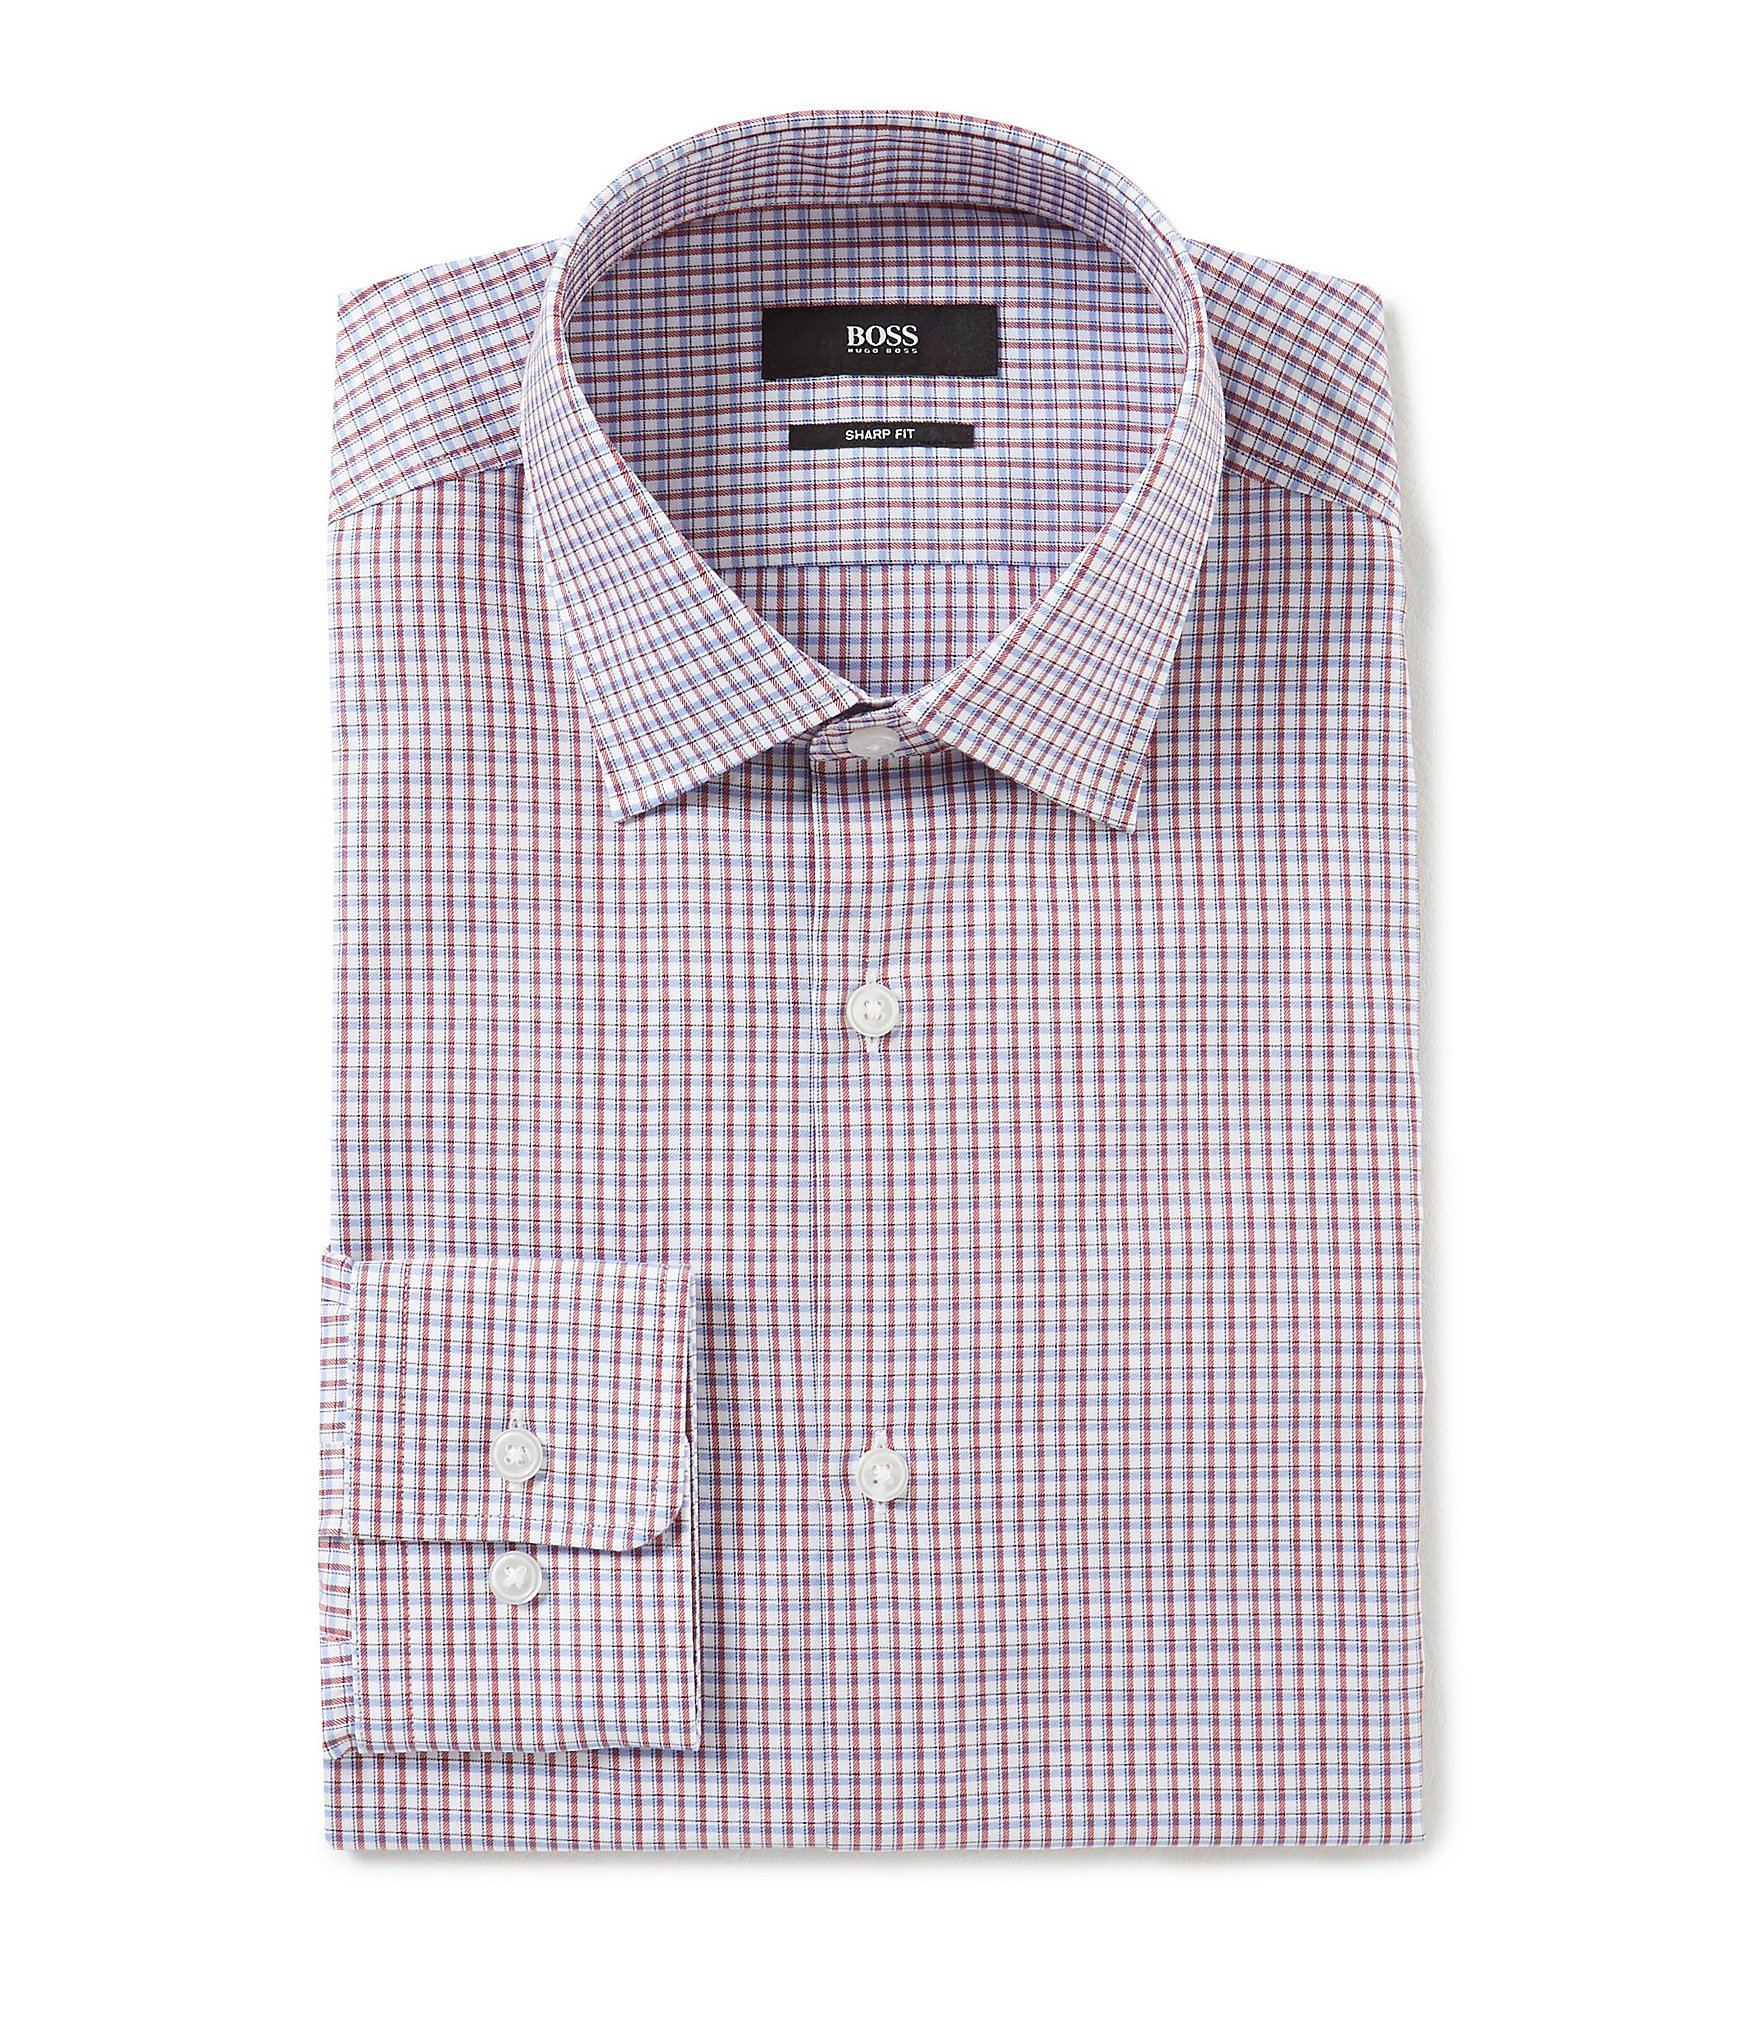 Hugo Hugo Boss Slim Fit Spread Collar Checked Dress Shirt